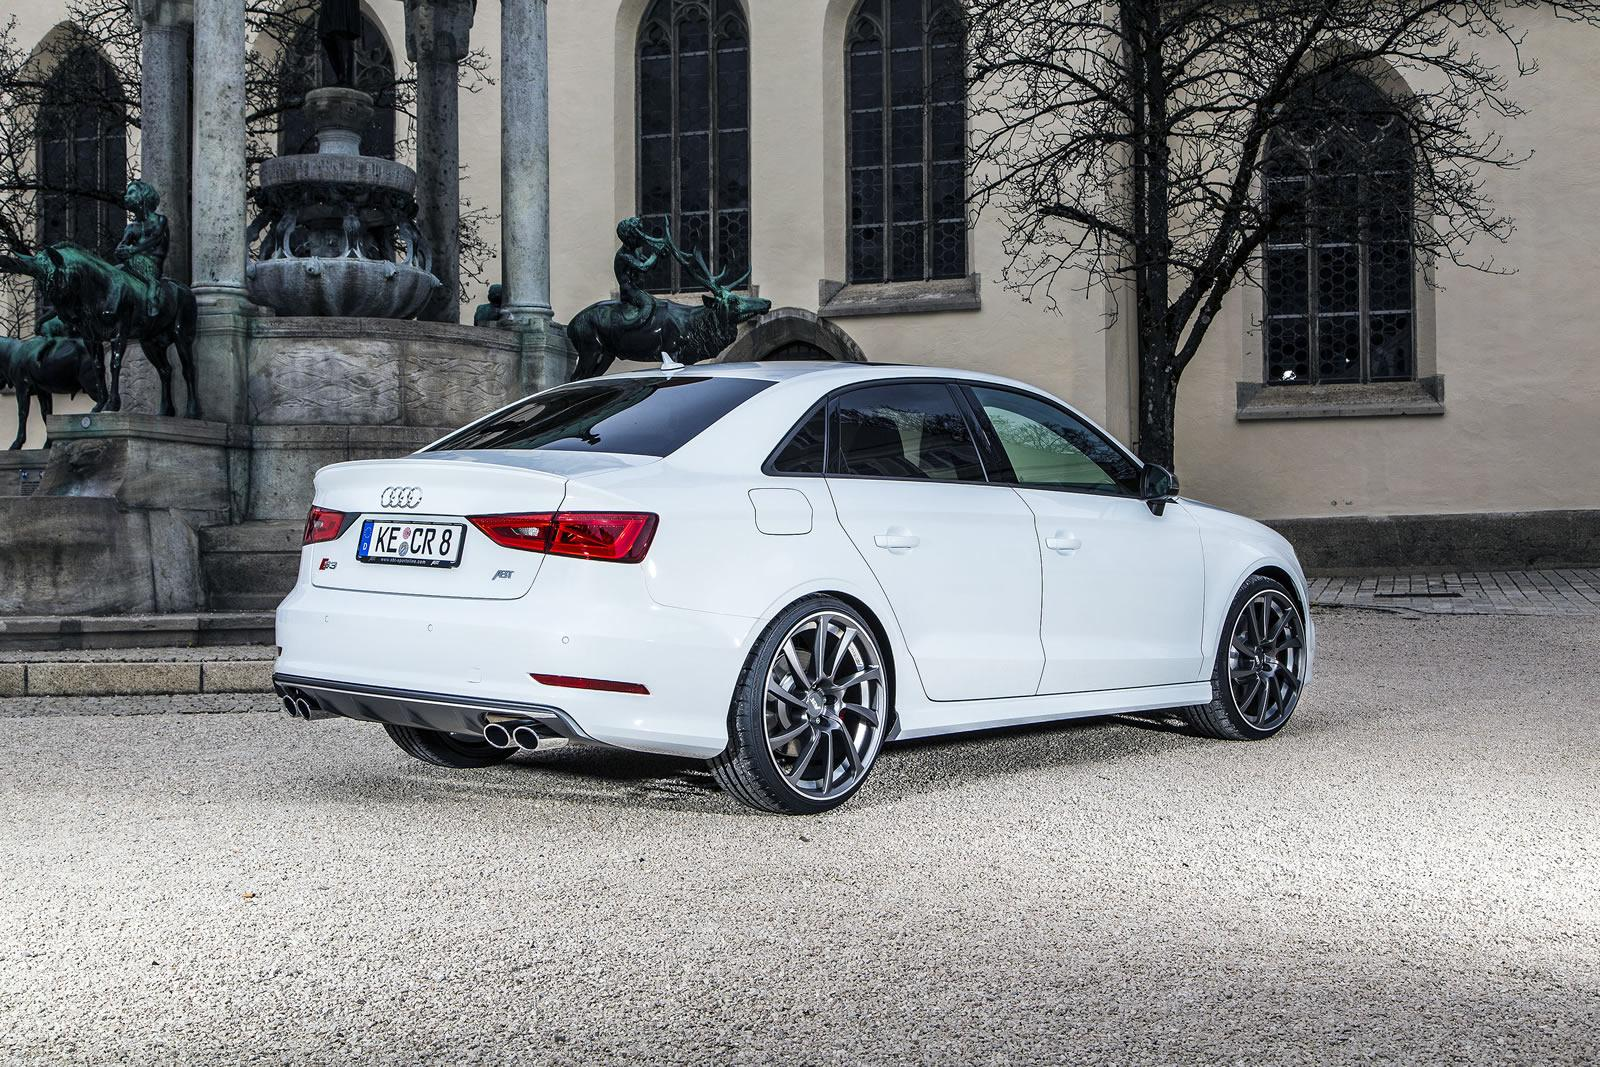 Audi Tuning: ABT-tuned S3 Sedan does 0-100km/h in 4.5s